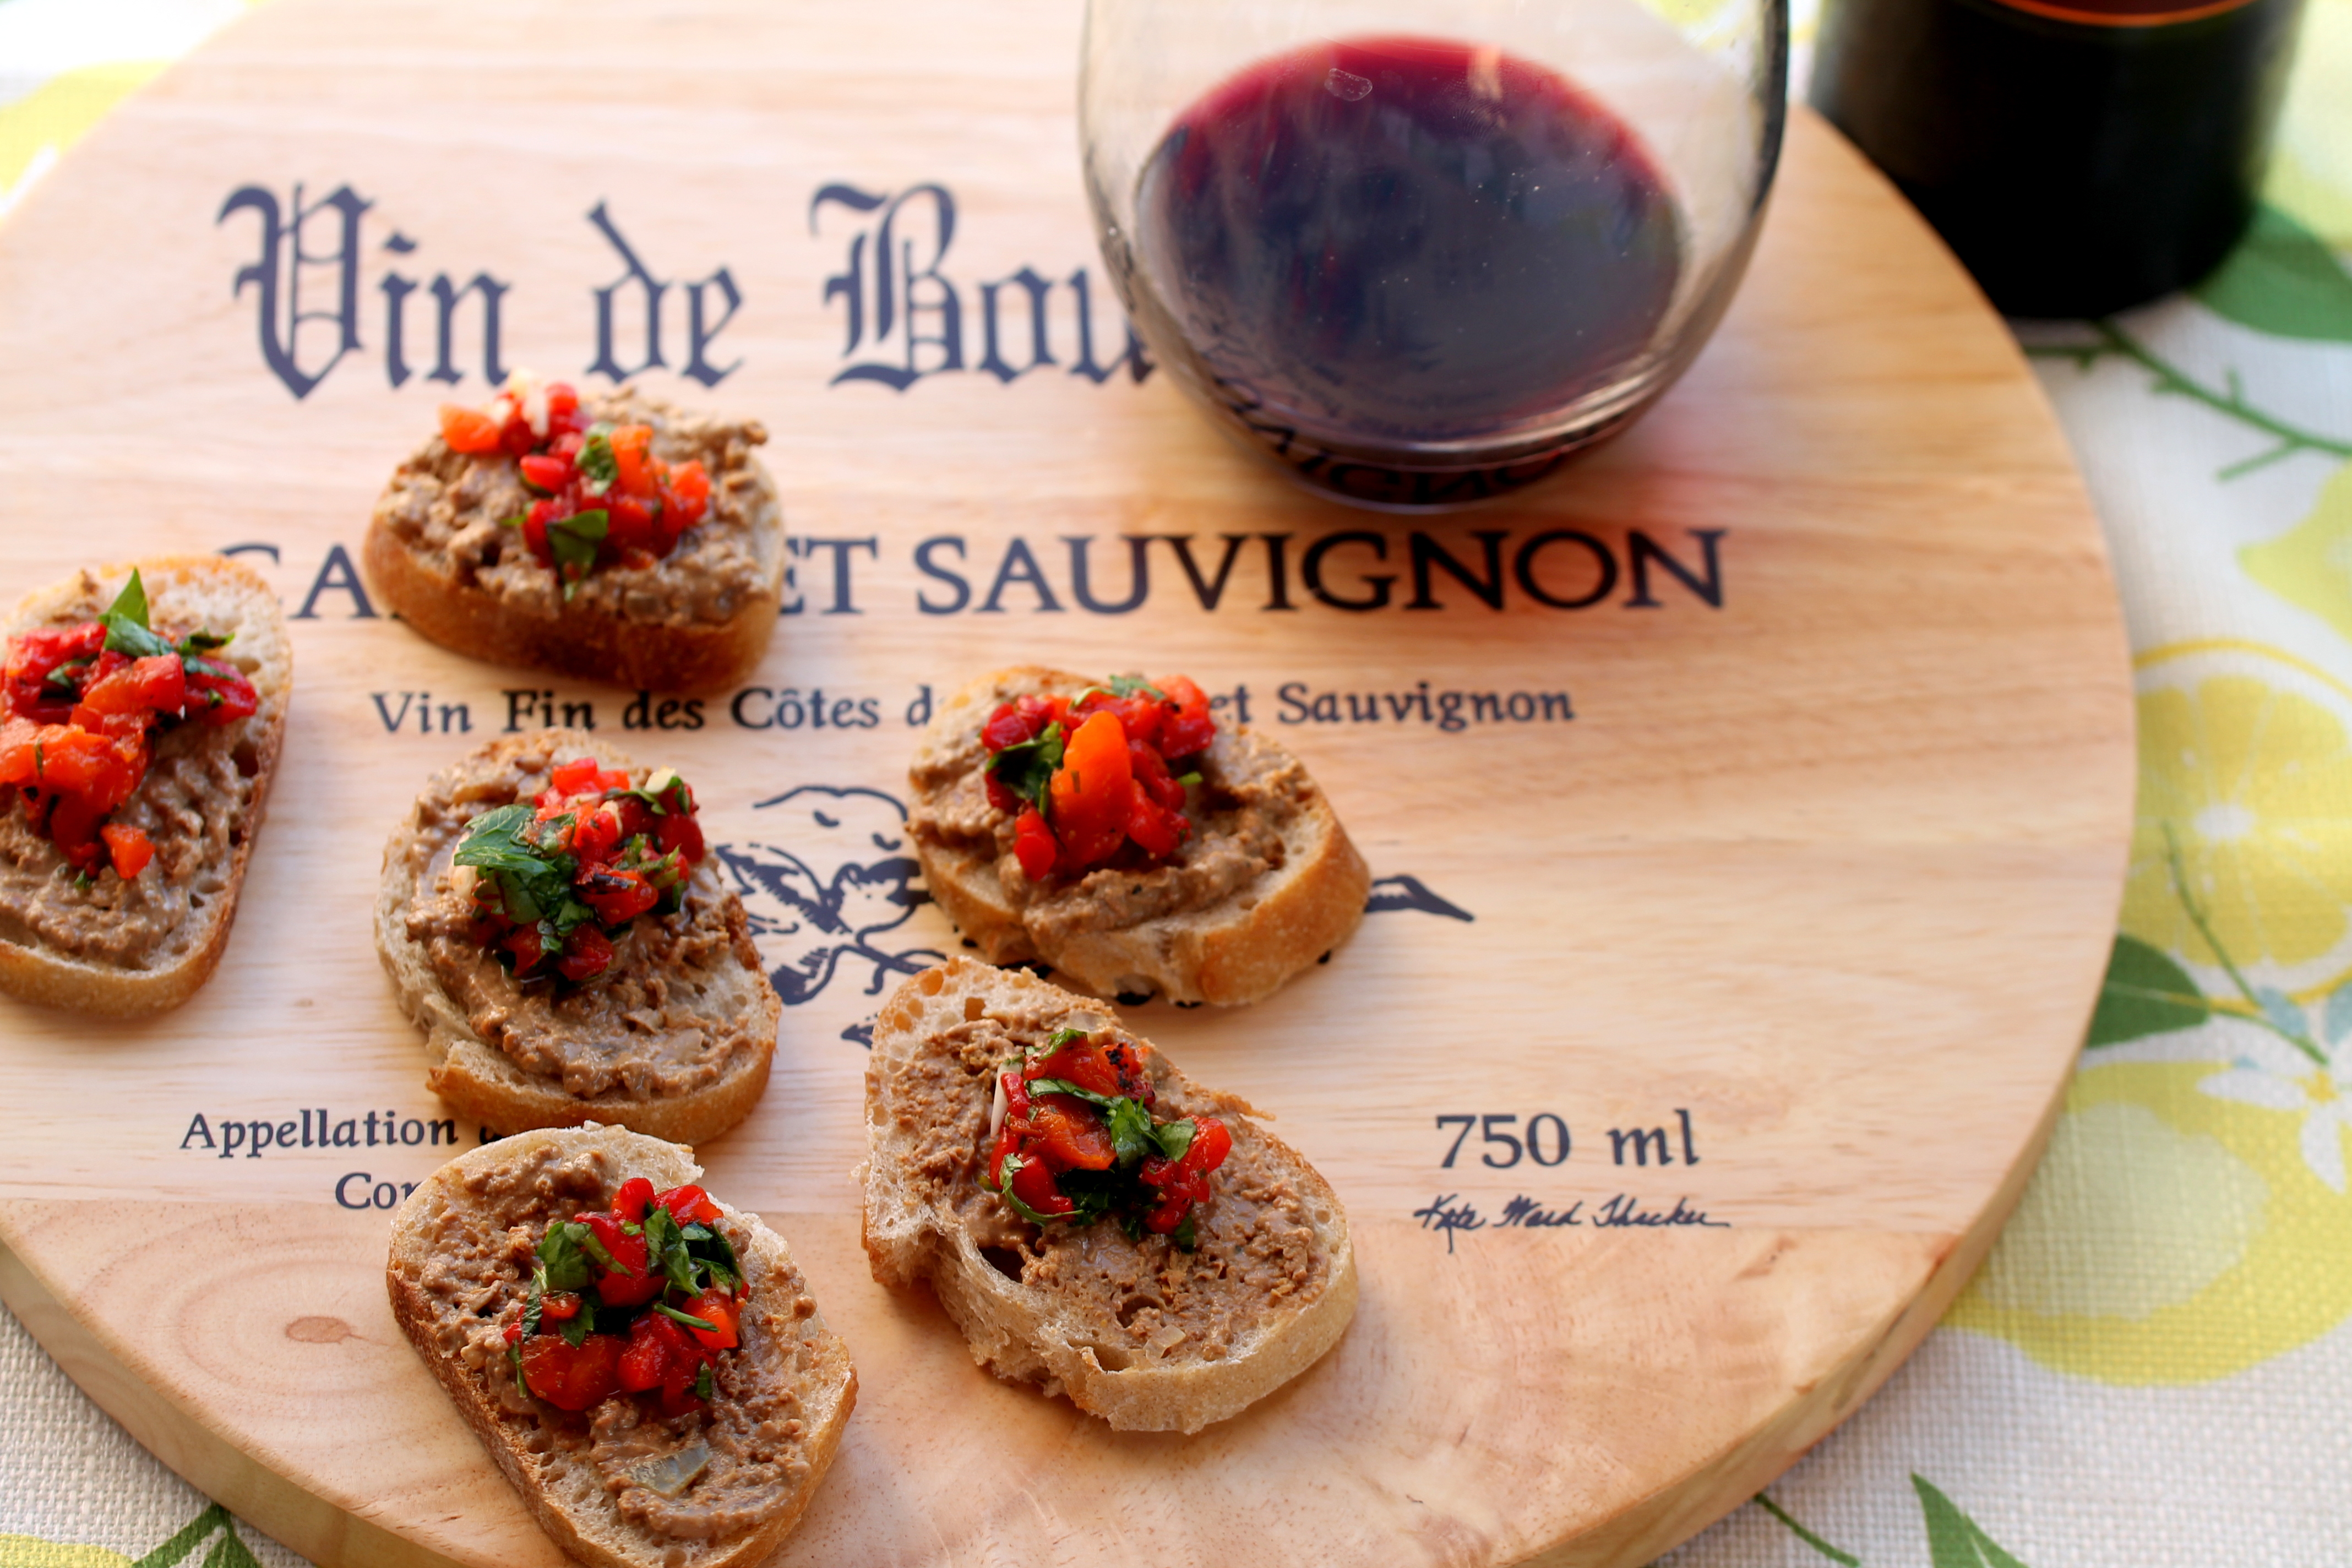 Chicken Liver Pate with Roasted Red Peppers on Toast